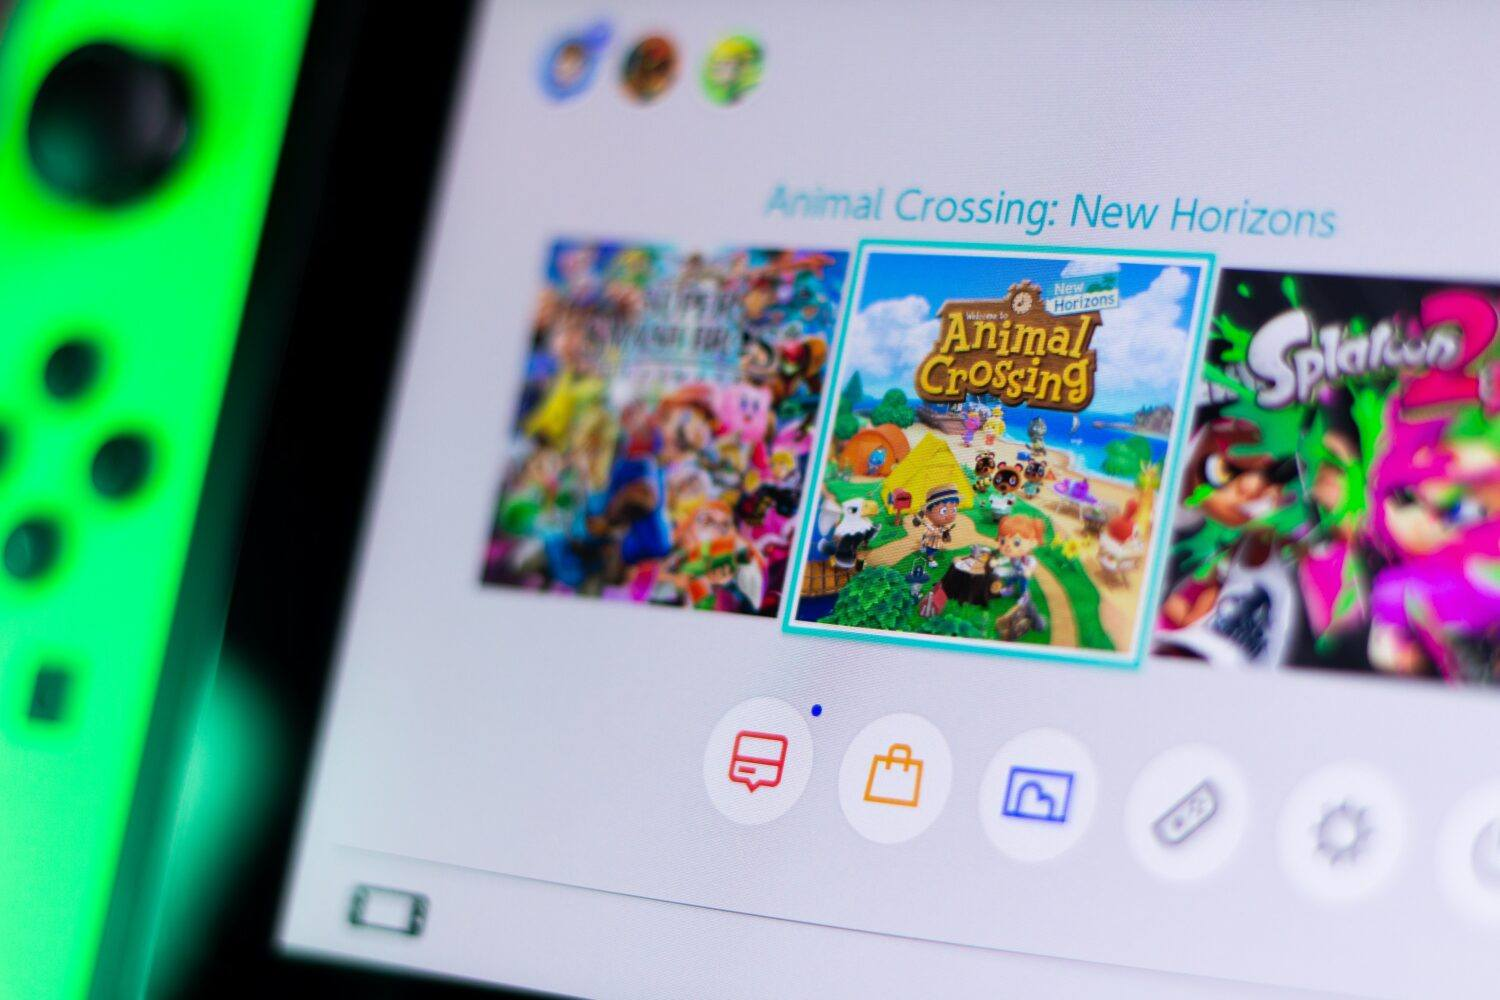 oms jeux video animal crossing new horizons